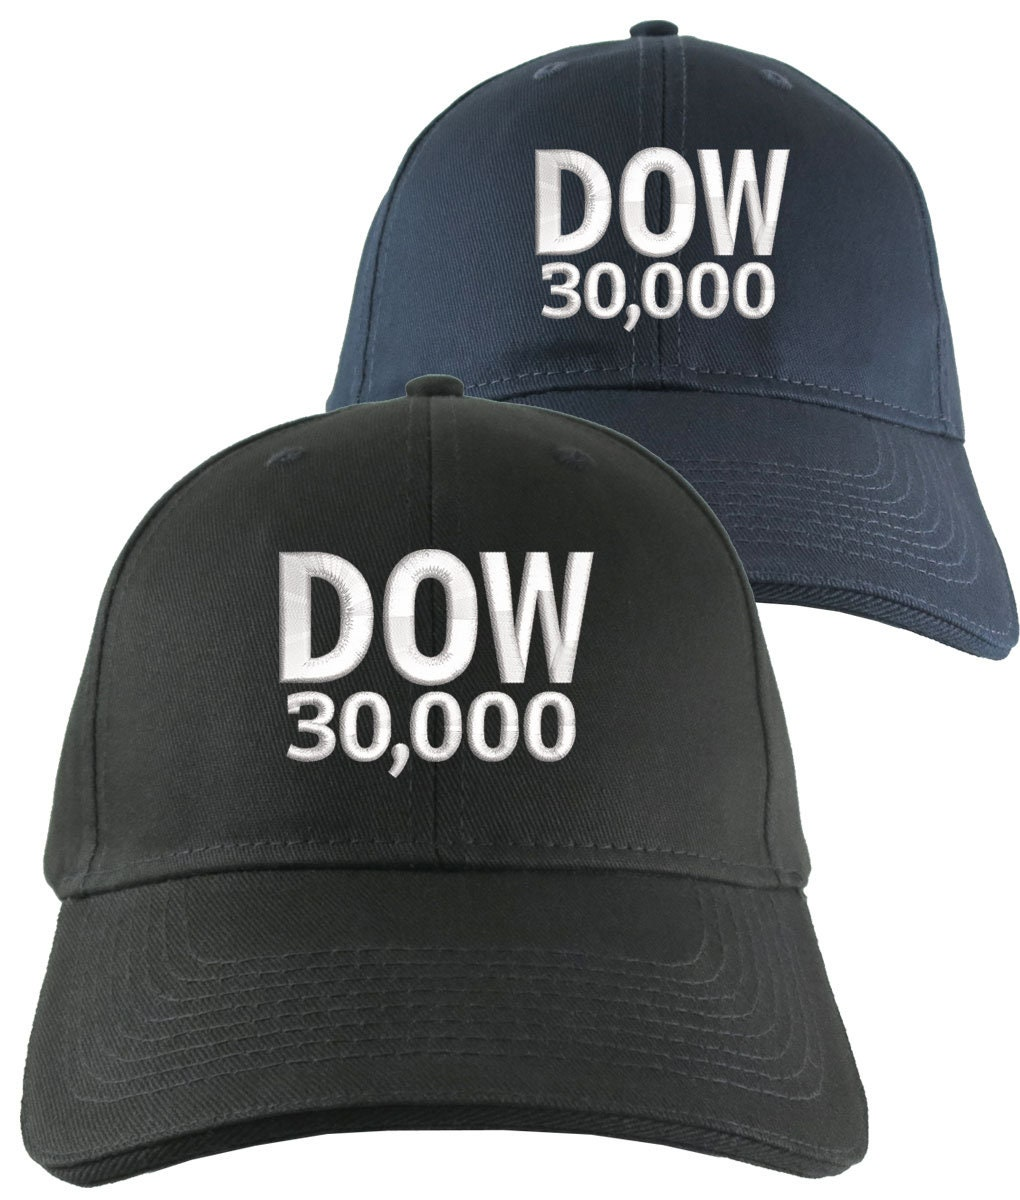 b28232de NYSE Hat Dow 30000 Stock Broker Custom Embroidery Adjustable Navy or Black  Soft Structured Classic Baseball Cap + Personalization Options